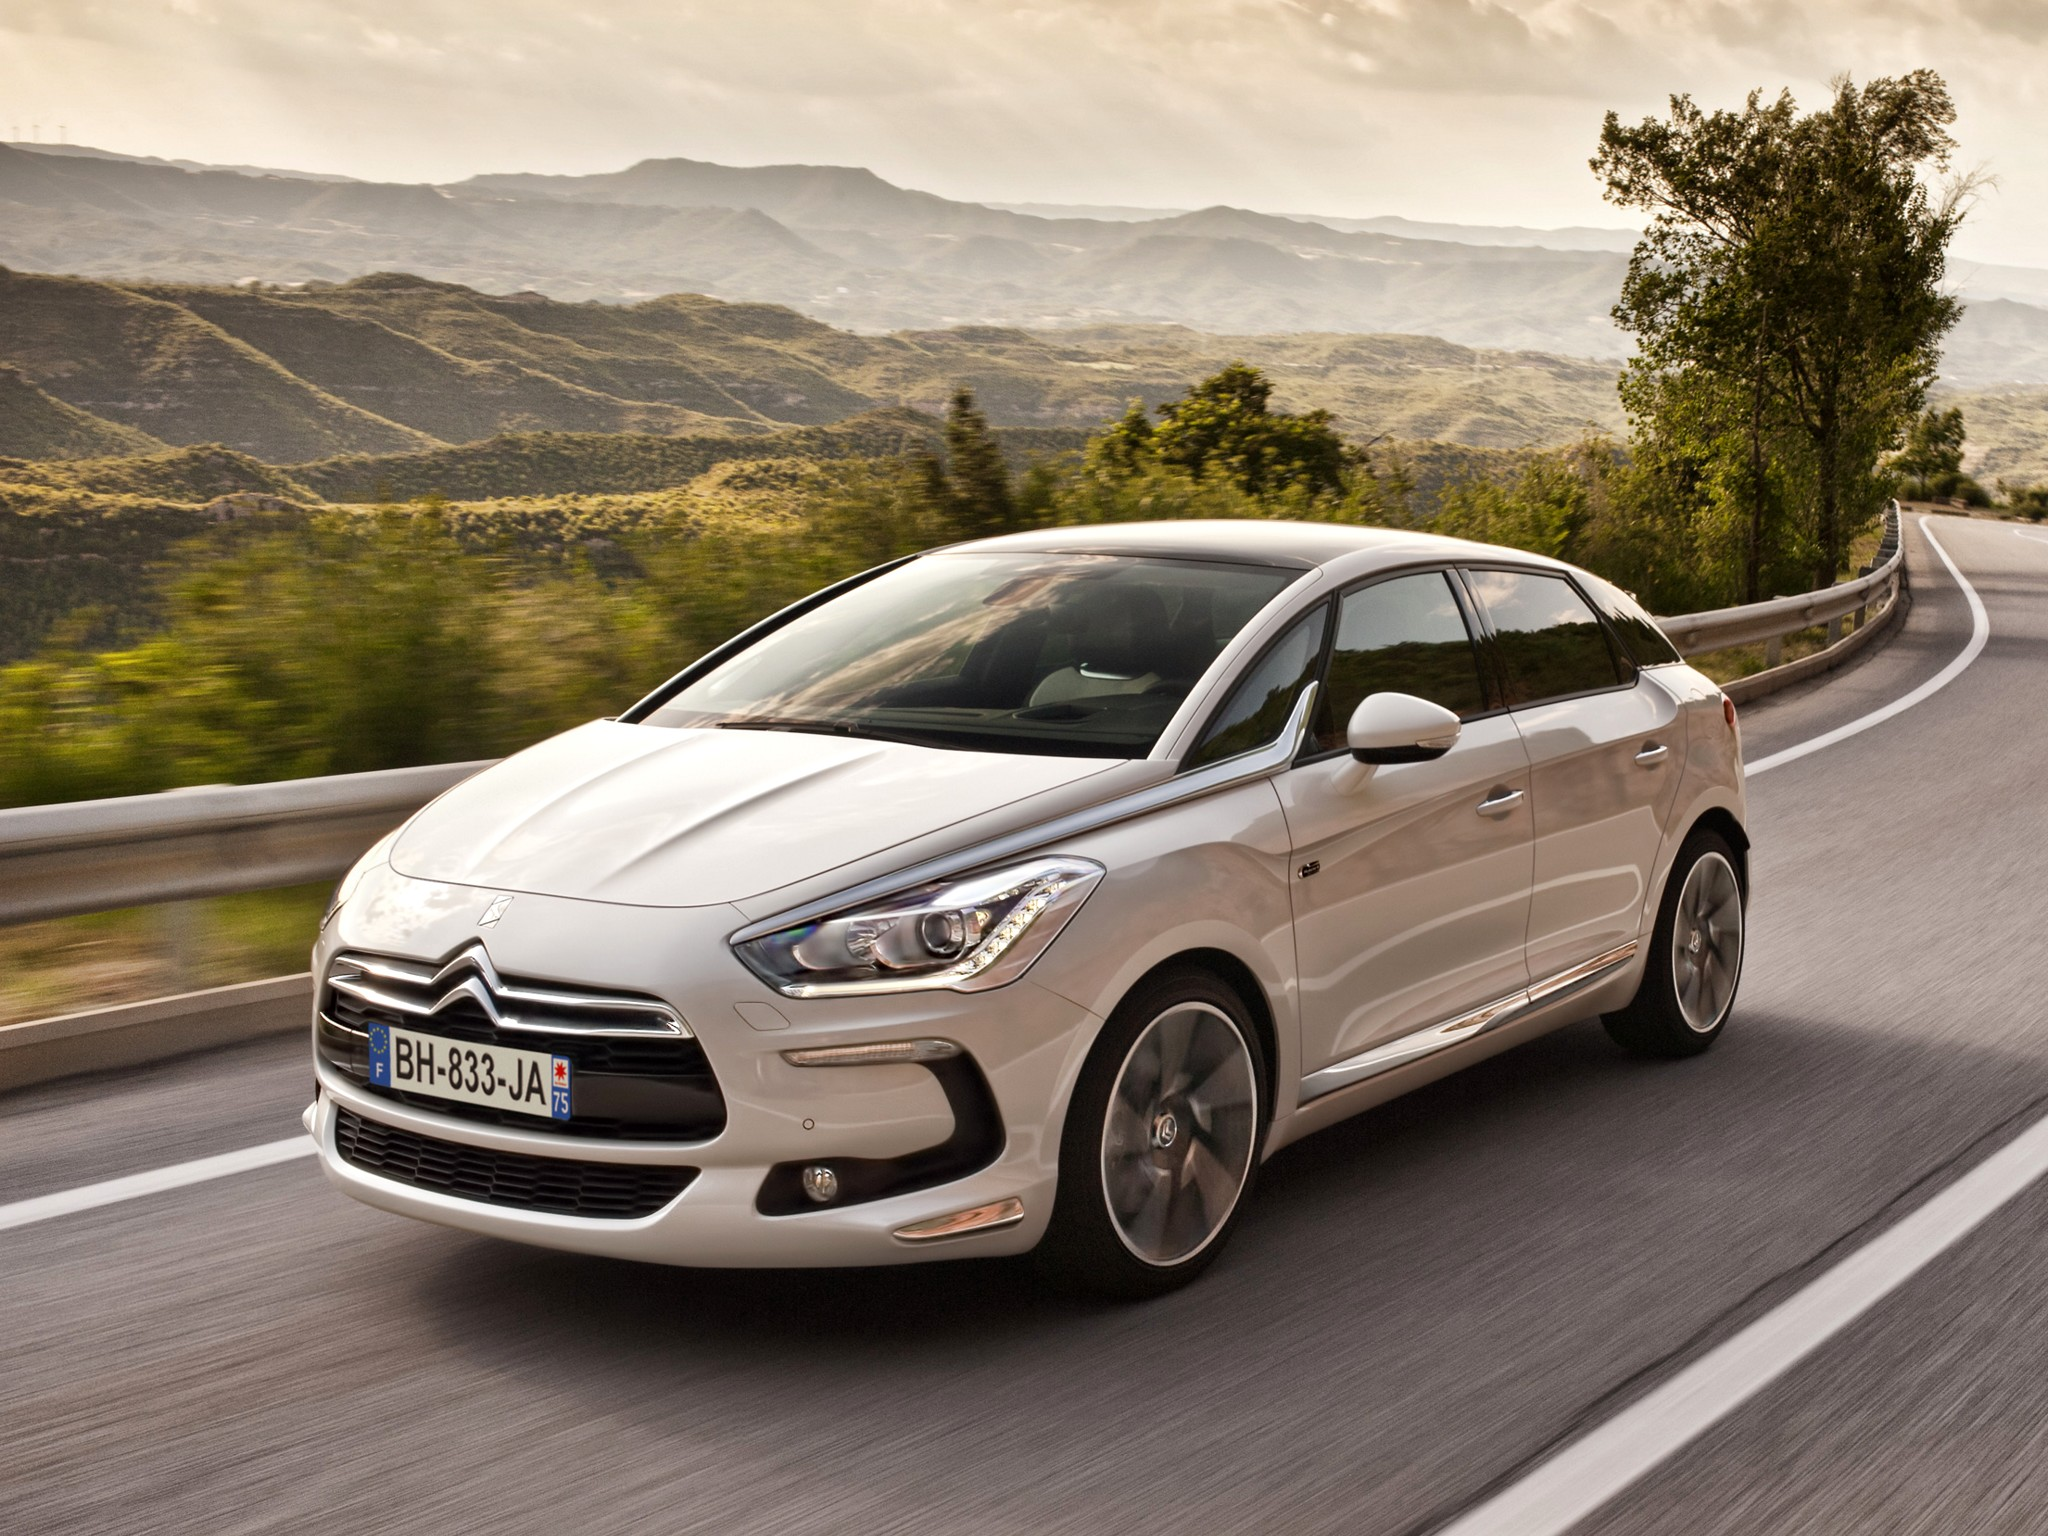 citroen ds5 specs 2011 2012 2013 2014 2015 2016 2017 2018 autoevolution. Black Bedroom Furniture Sets. Home Design Ideas